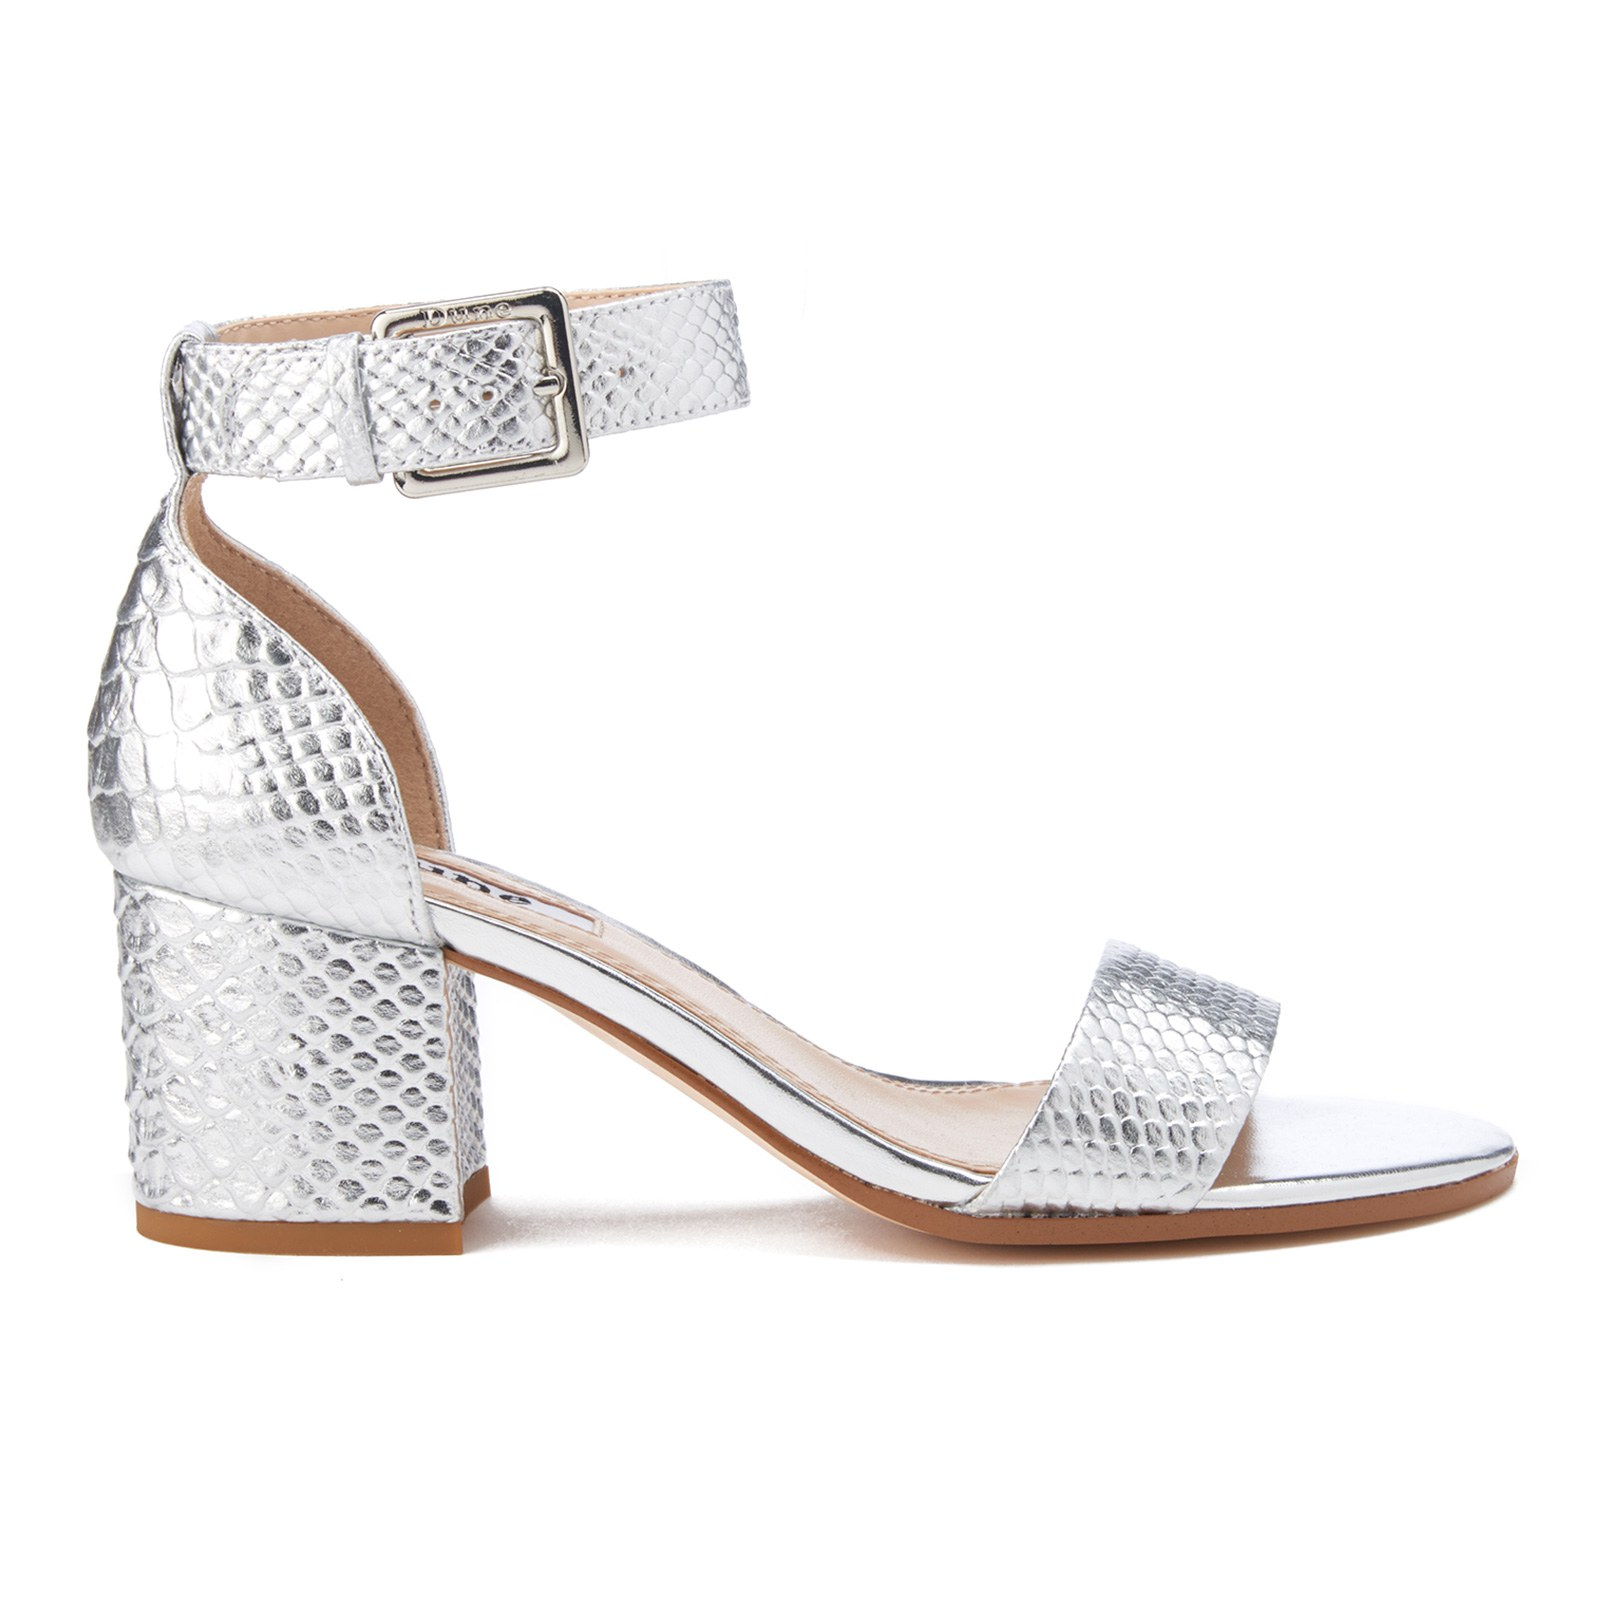 Dune Women's Jaygo Barely There Blocked Heeled Sandals Silver Reptile